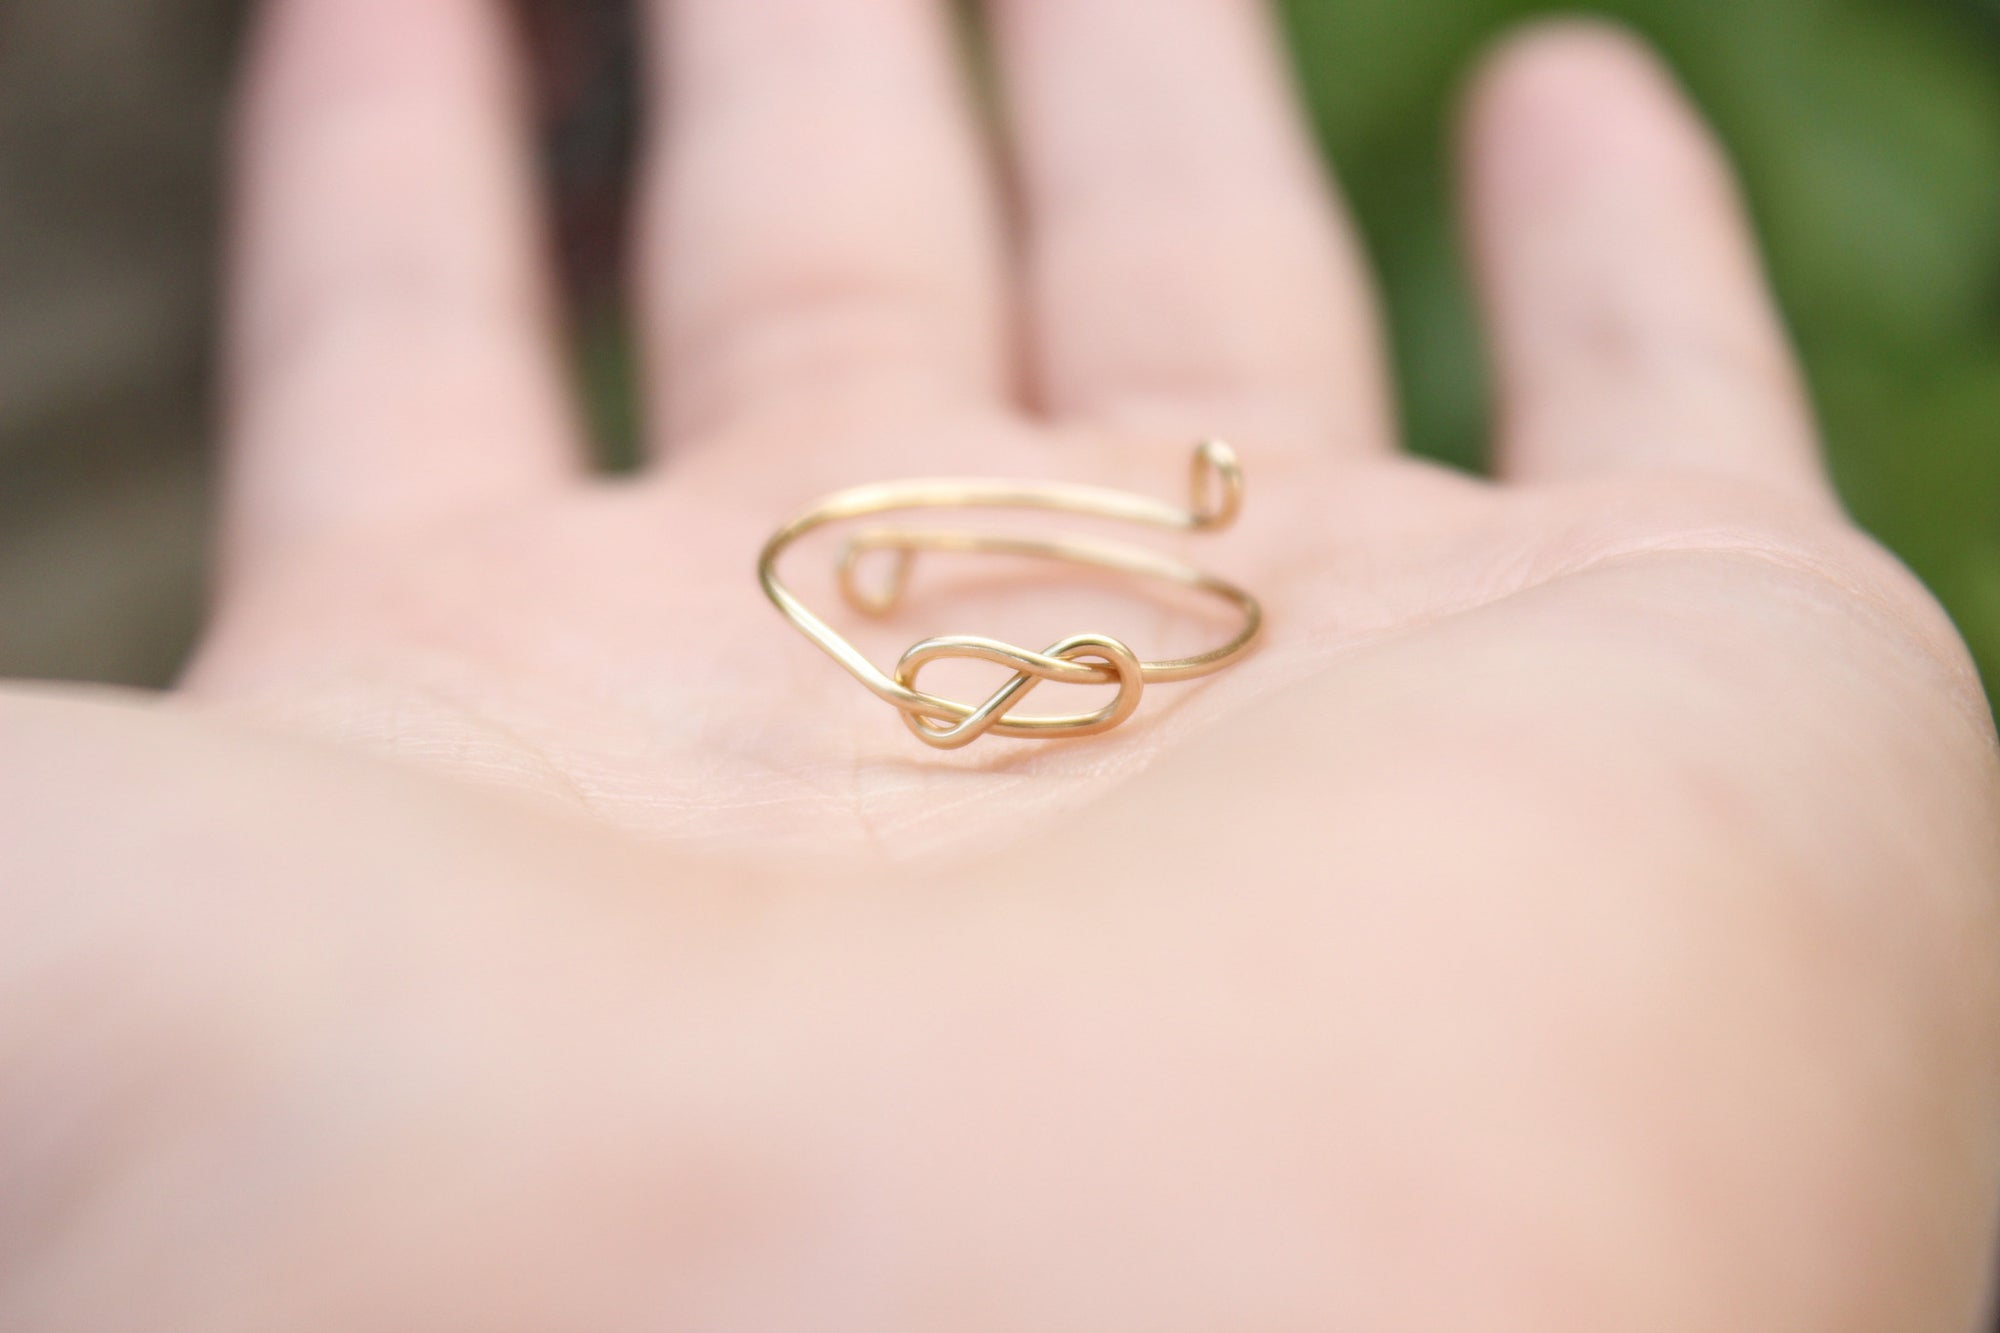 Infinity Knot Ring – Designed By Lei